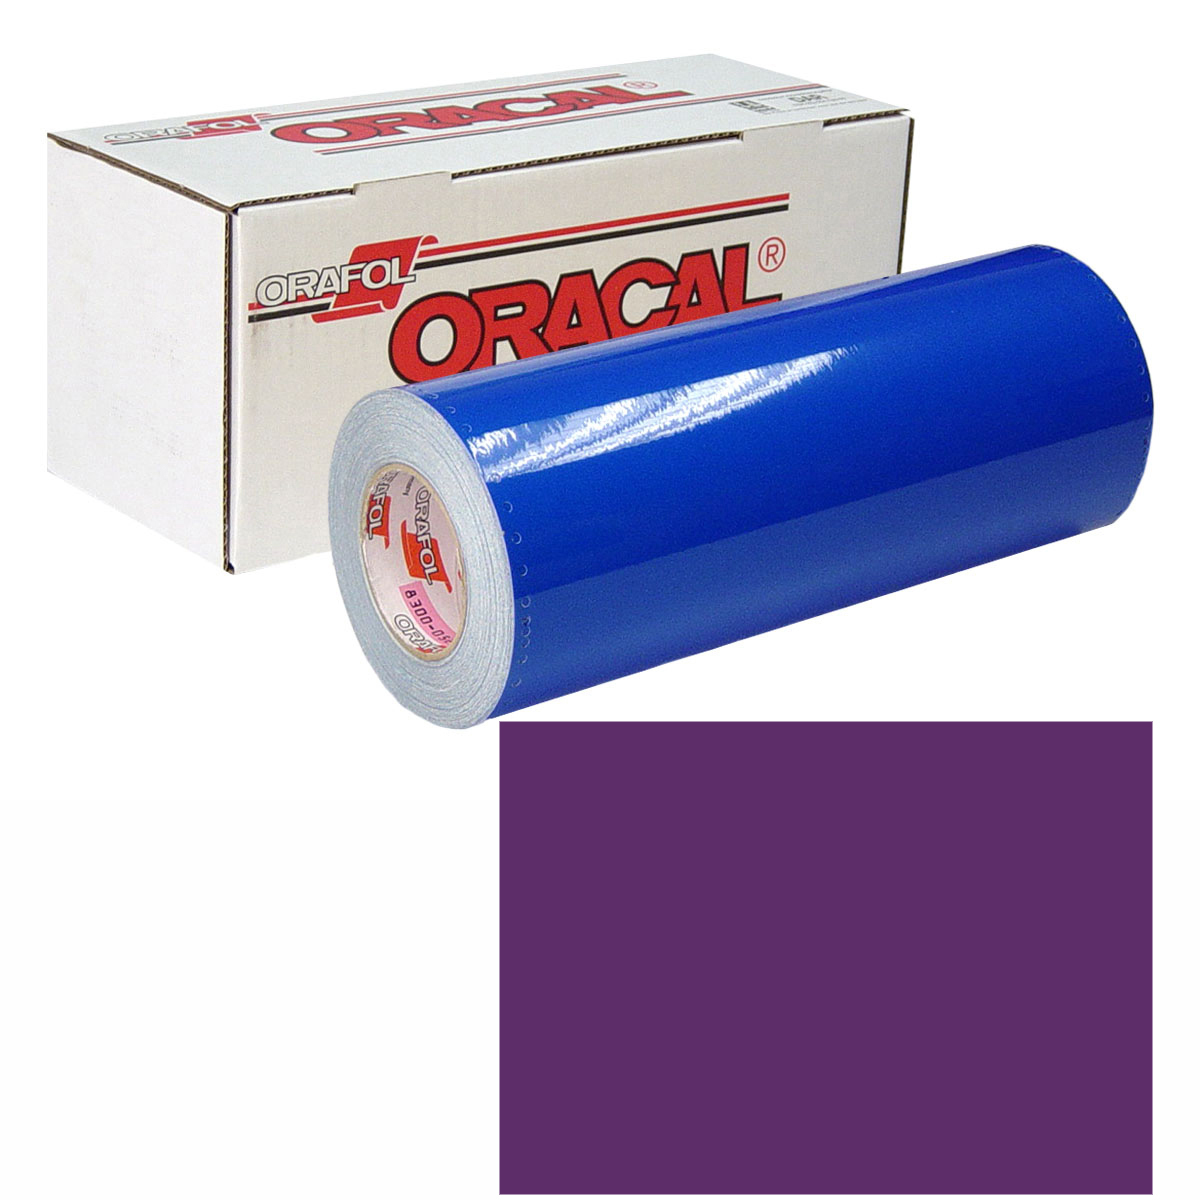 ORACAL 631 Unp 48in X 50yd 040 Violet